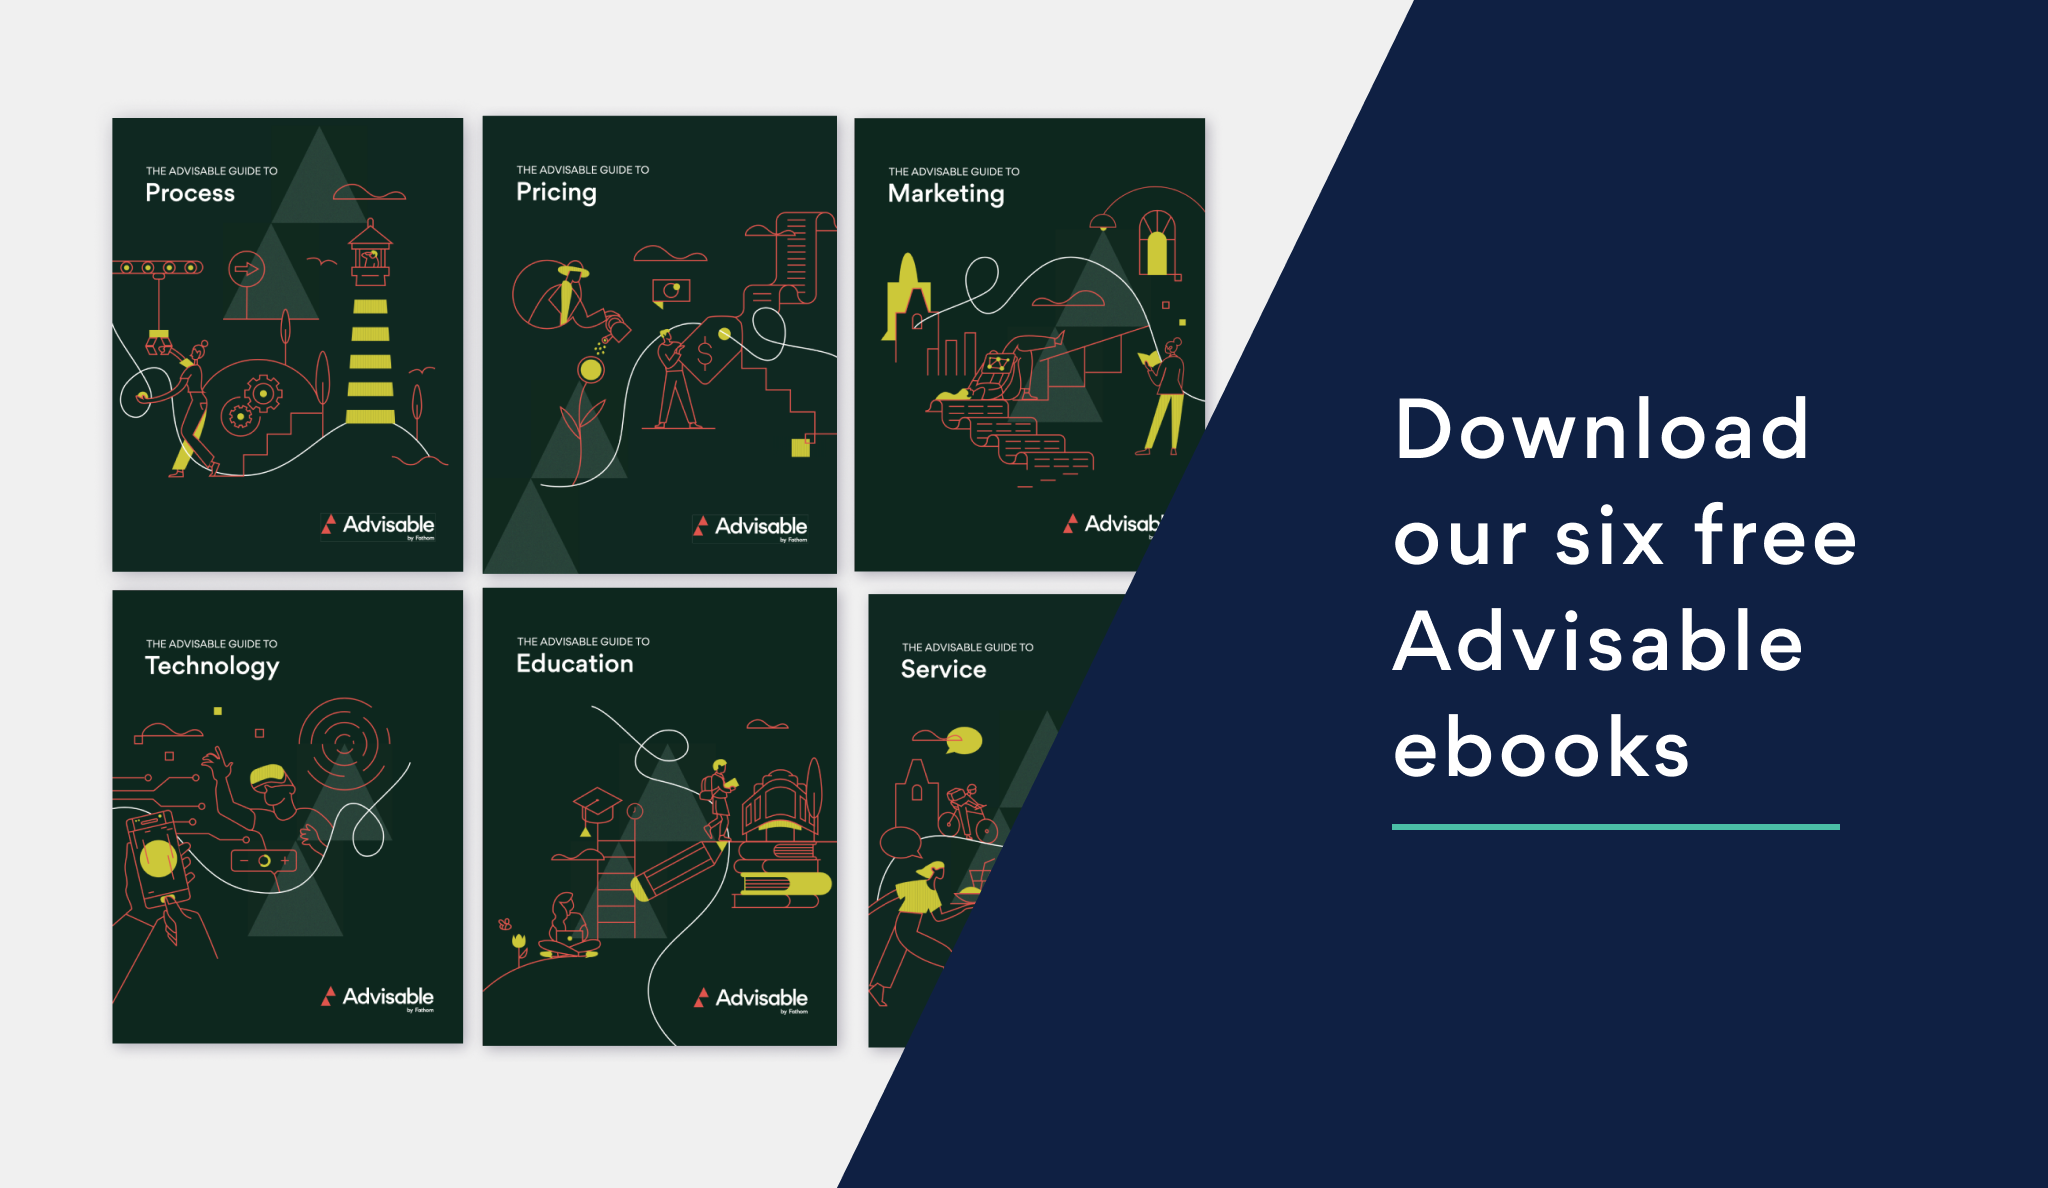 Download our six free Advisable ebooks